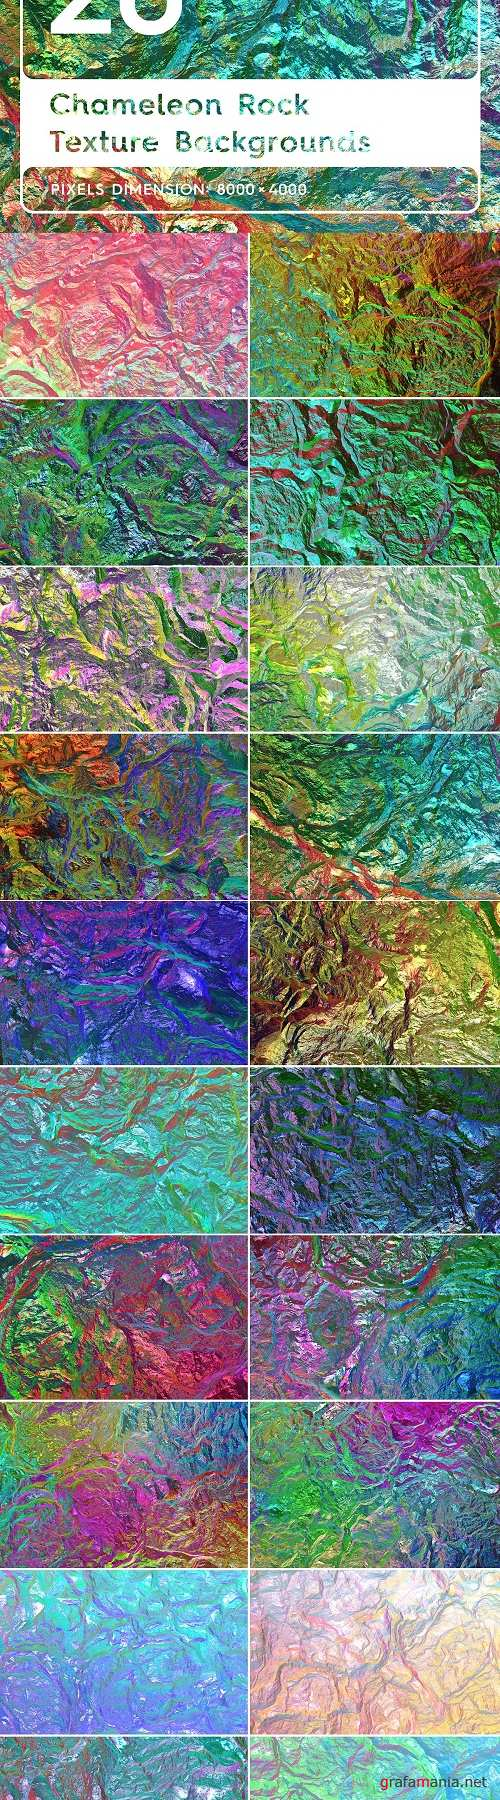 20 Chameleon Rock Texture Background - 3816847